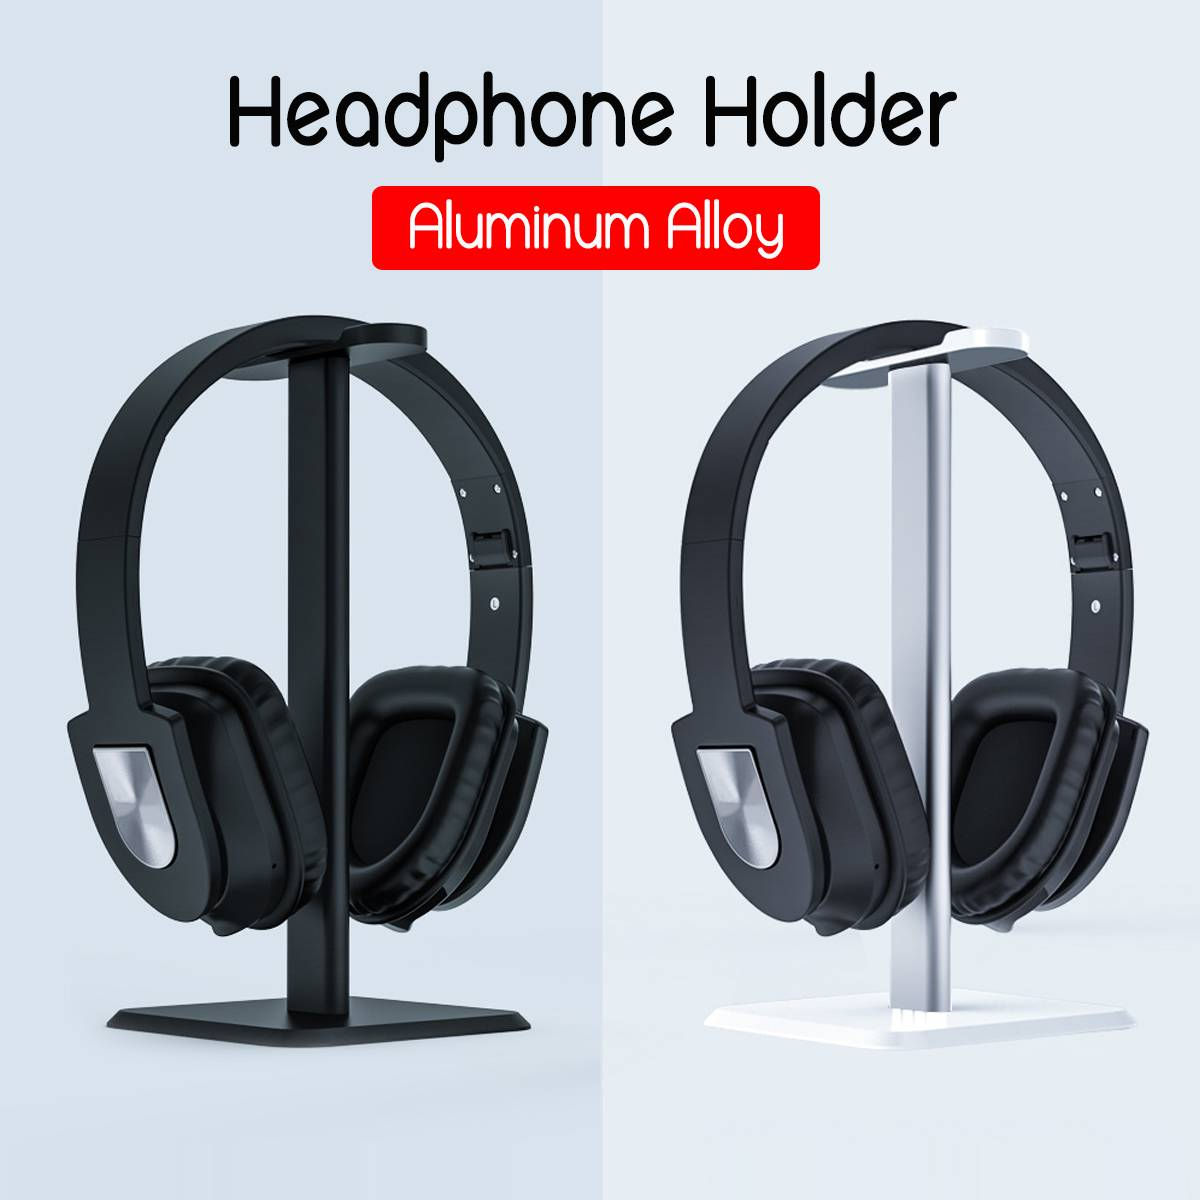 Universal Aluminum Headphone Holder Earphone Headset Hanger Headphone Desk Display Stand Shelf Bracket Hanger Support Bracket